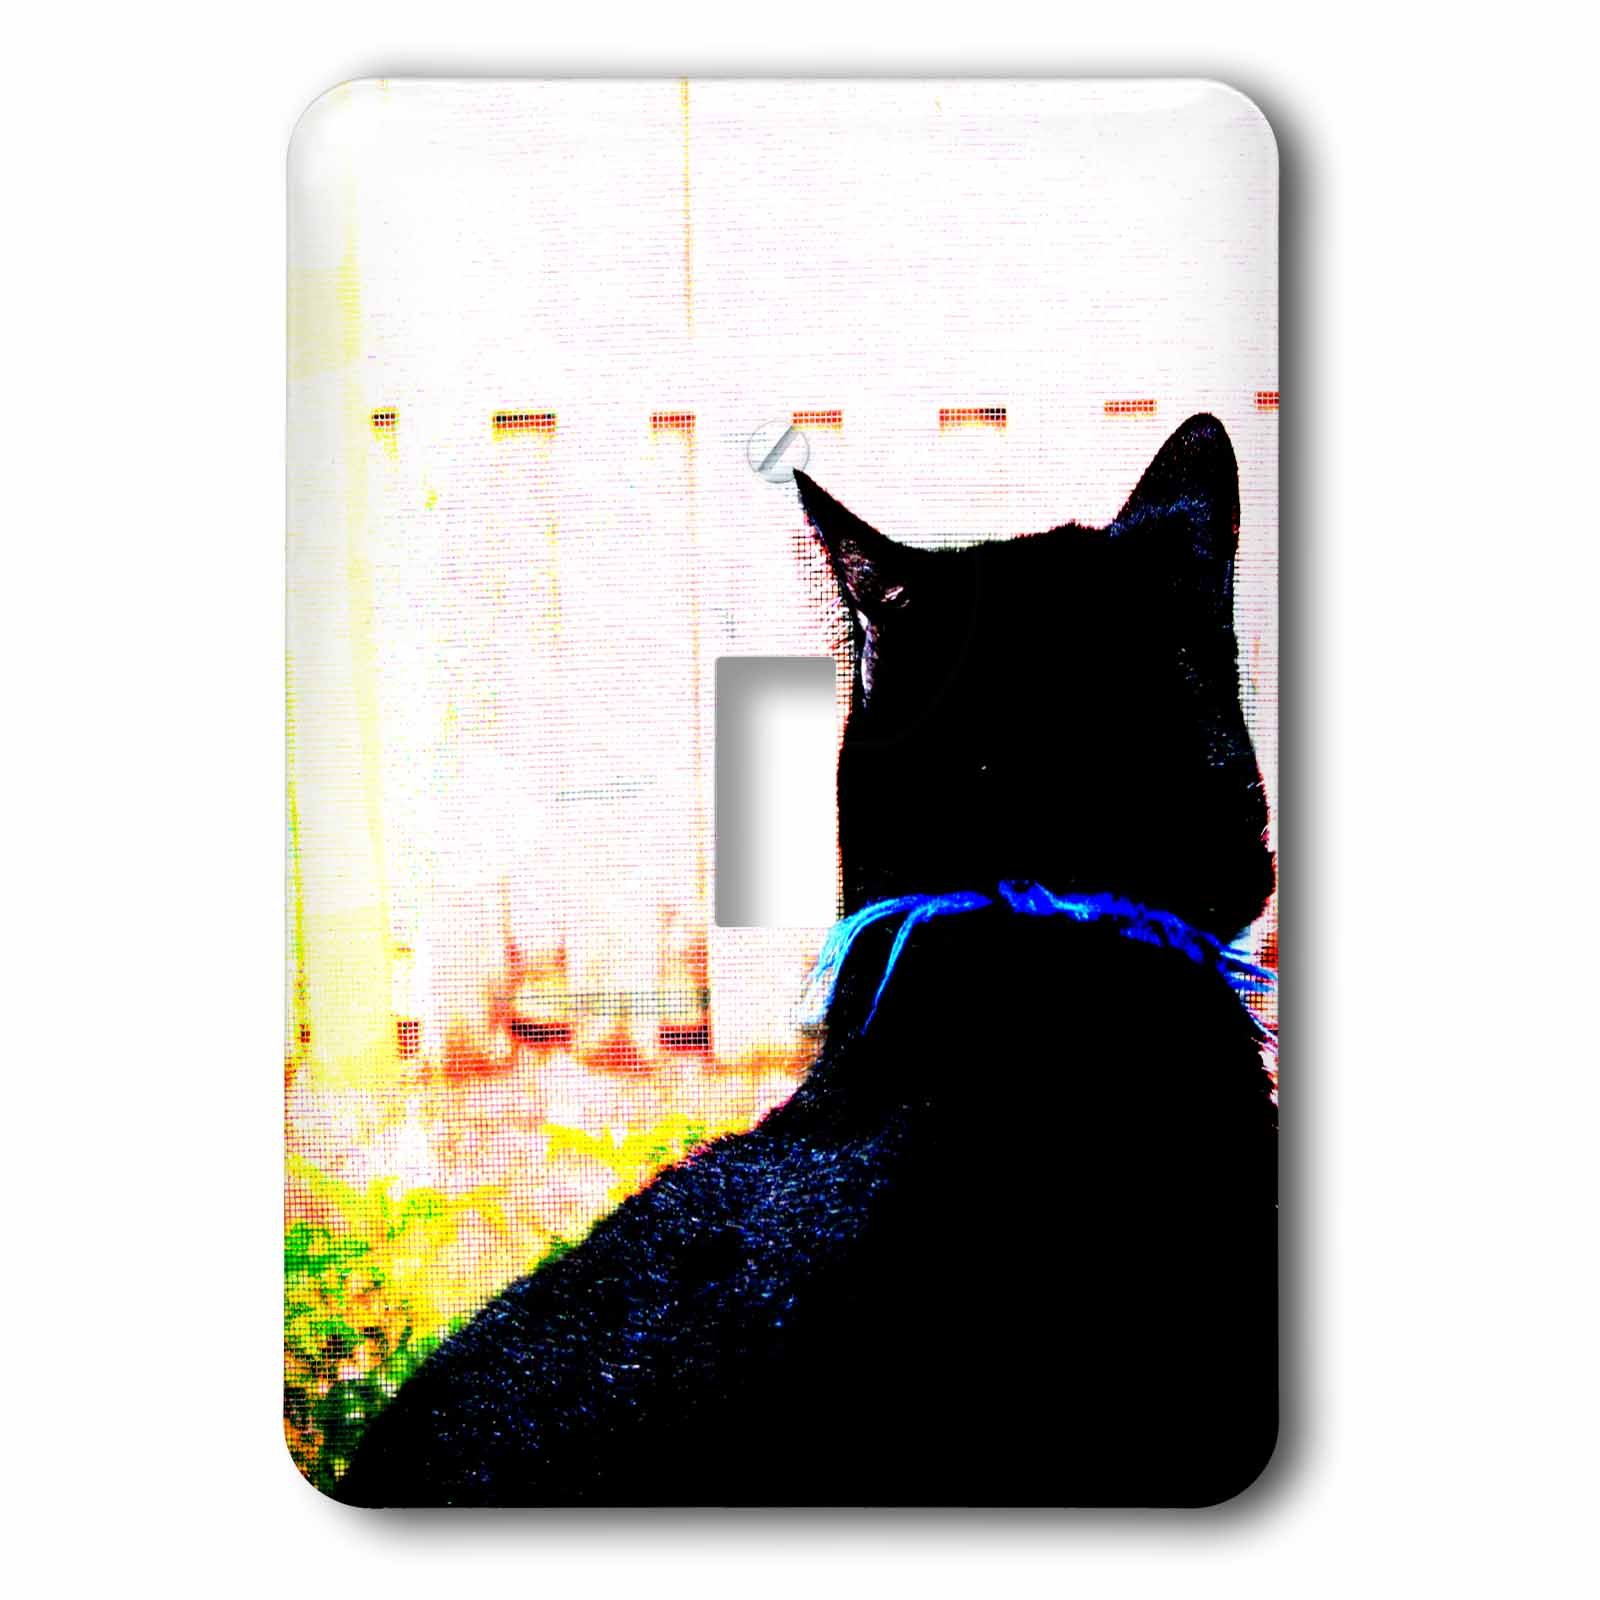 3dRose LLC 3dRose LLC lsp_155949_1 Black cat from behind animal looking out window - Single Toggle Switch